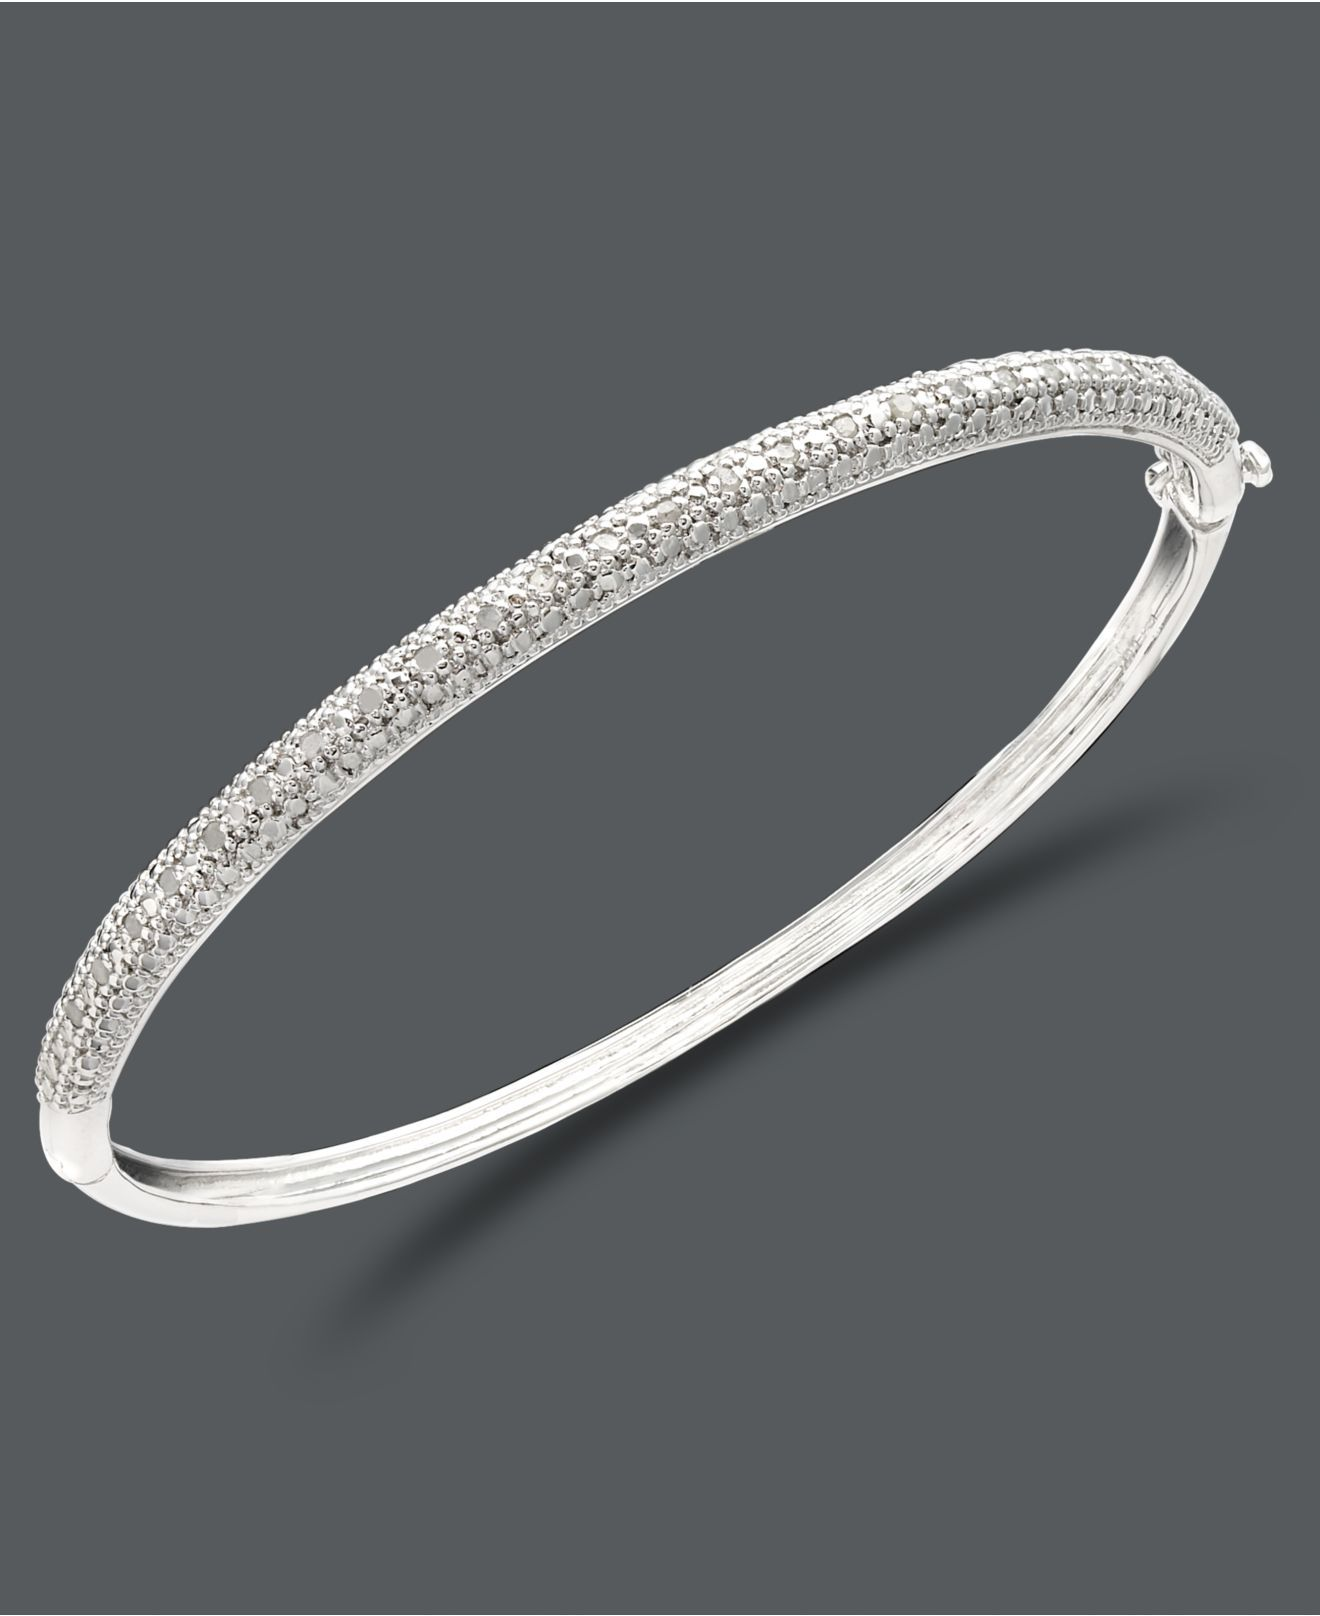 pin gems semi bangle gemstone precious at different wholesale sterling sar polki bangles buy including stones silver emerald diamond in